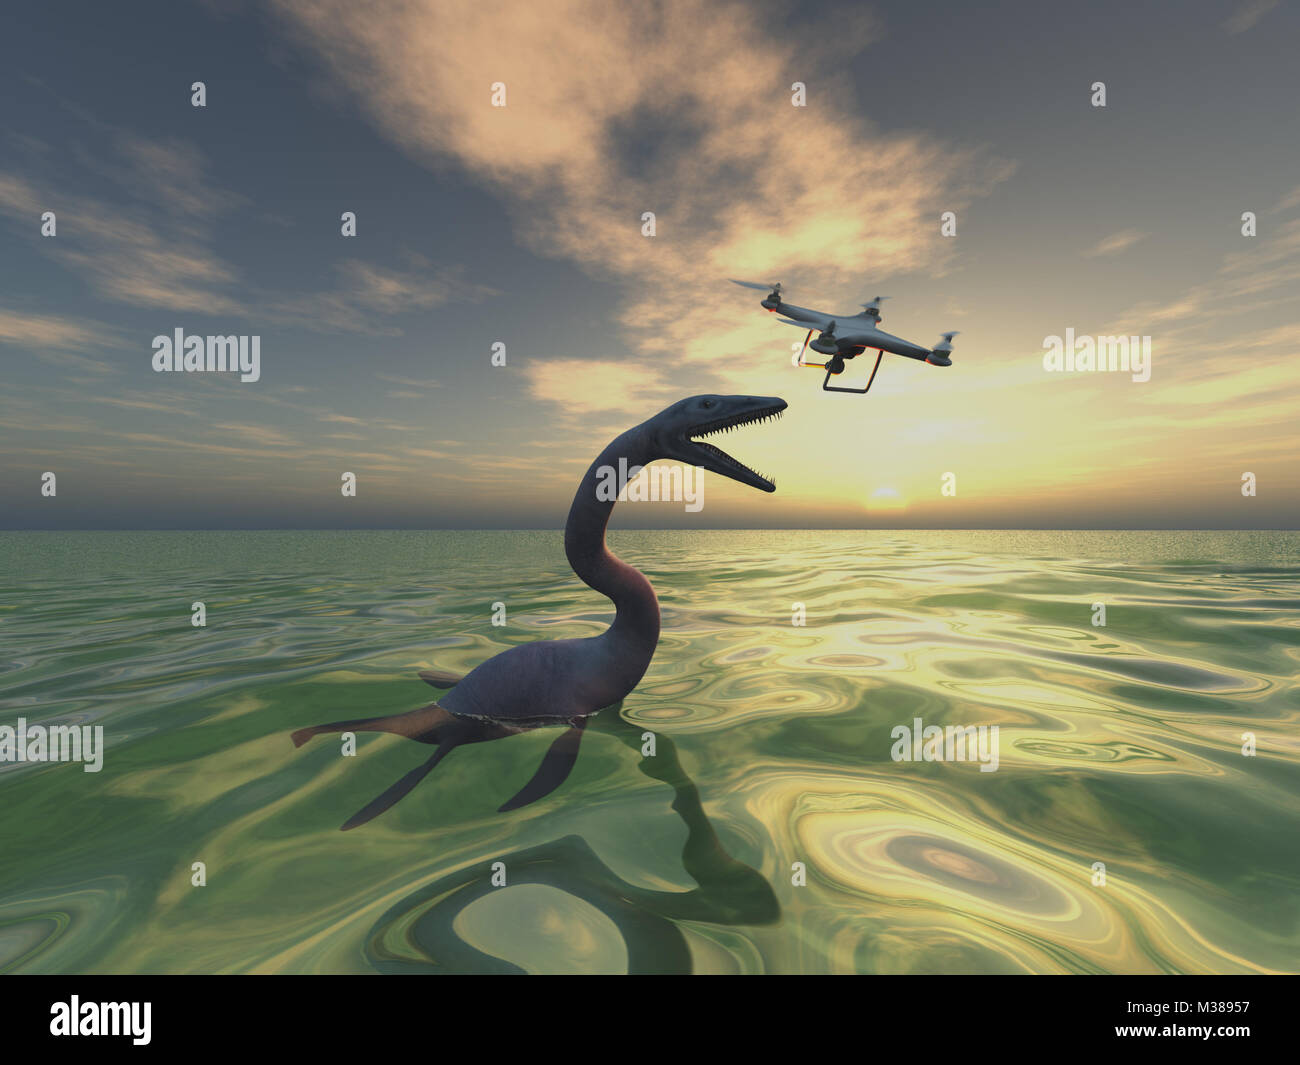 Sea monster and drone - Stock Image